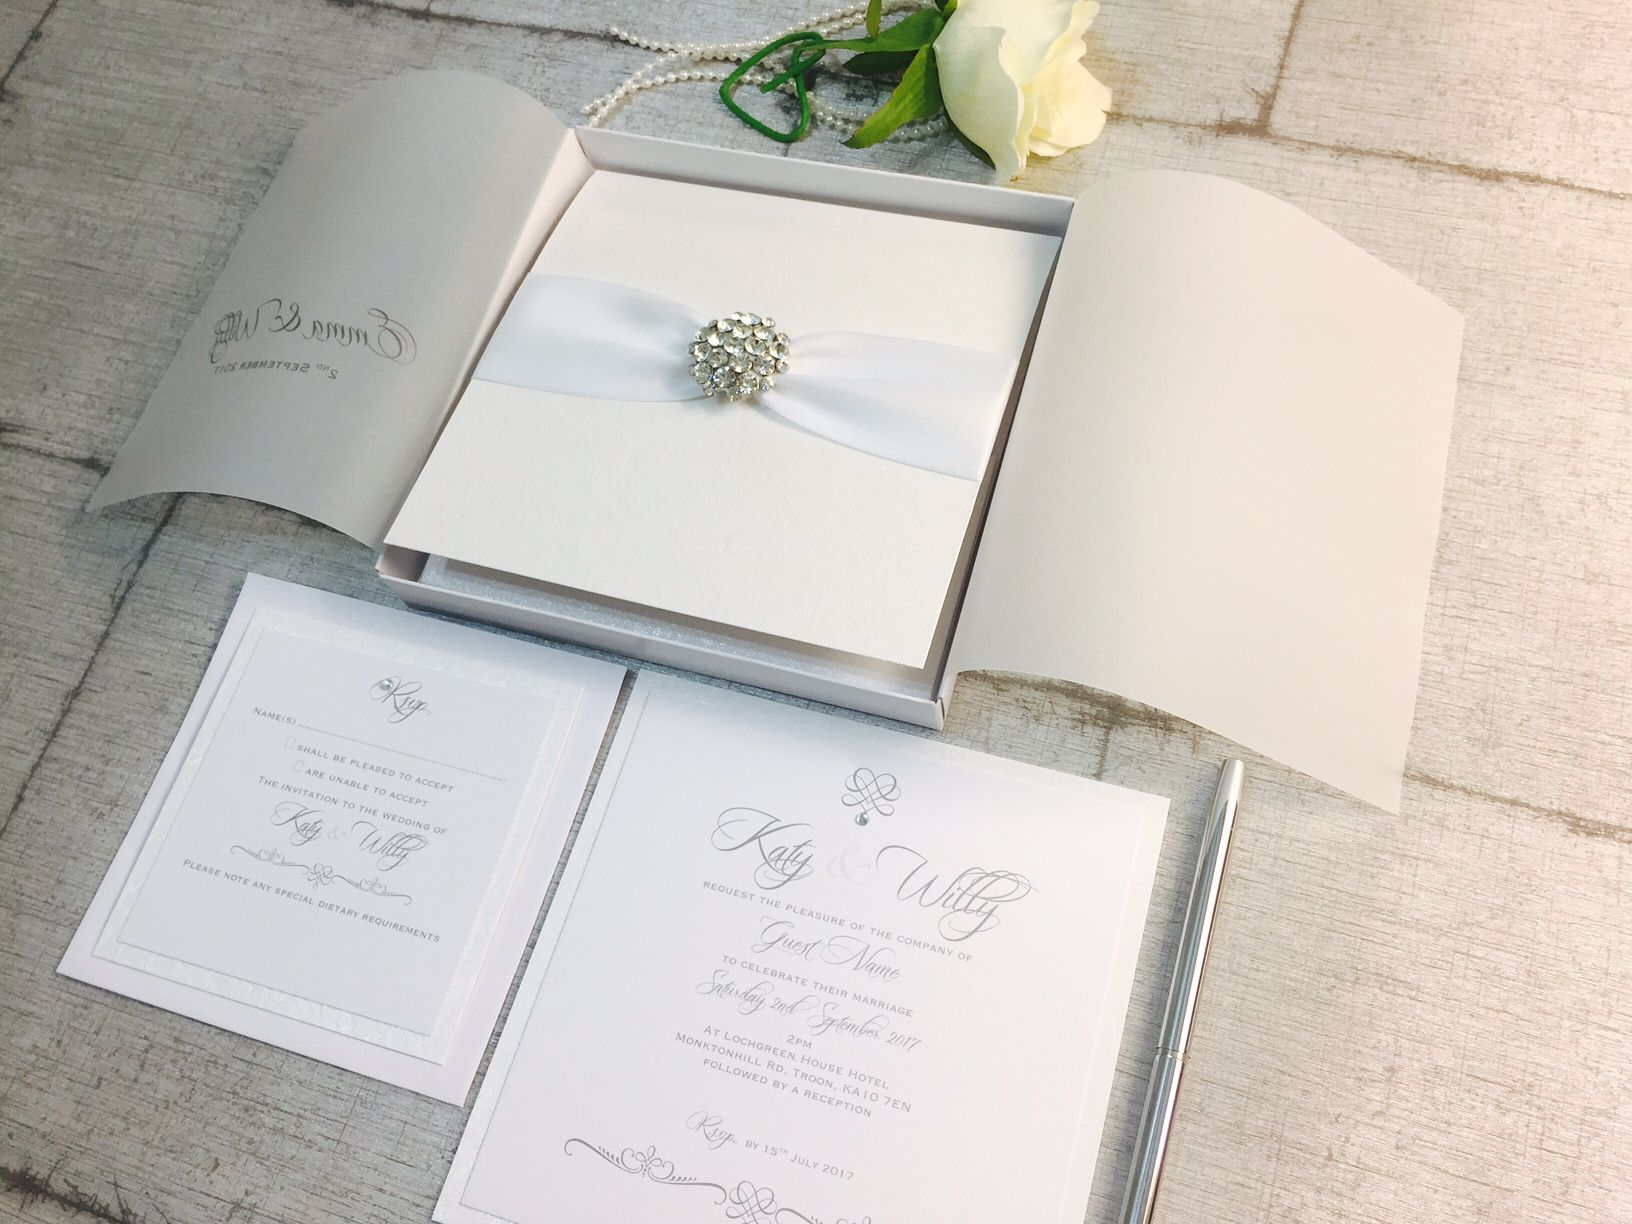 Boxed crystal wedding invitations